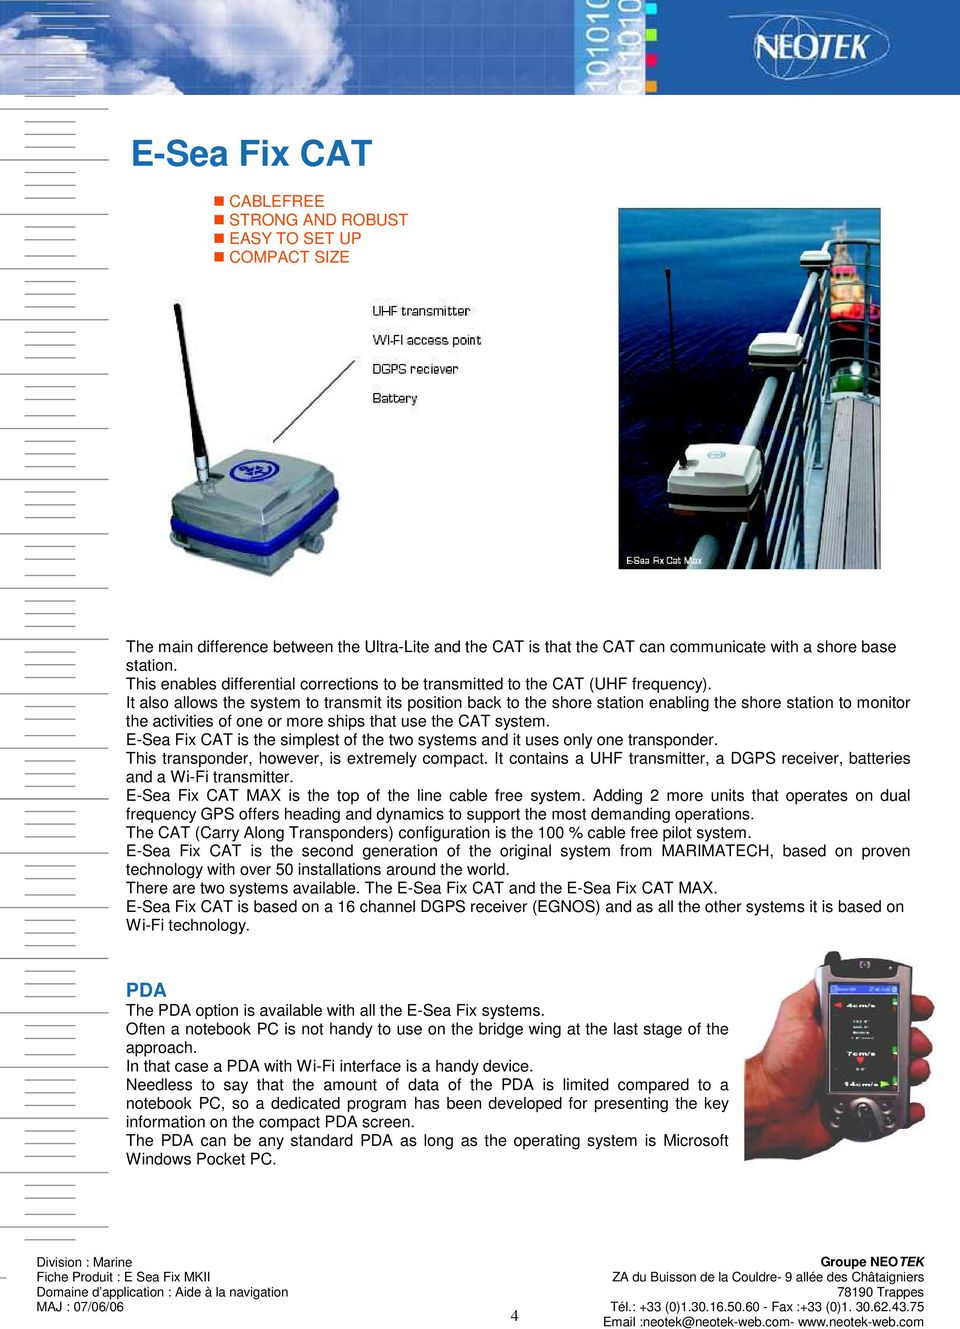 It also allows the system to transmit its position back to the shore station enabling the shore station to monitor the activities of one or more ships that use the CAT system.